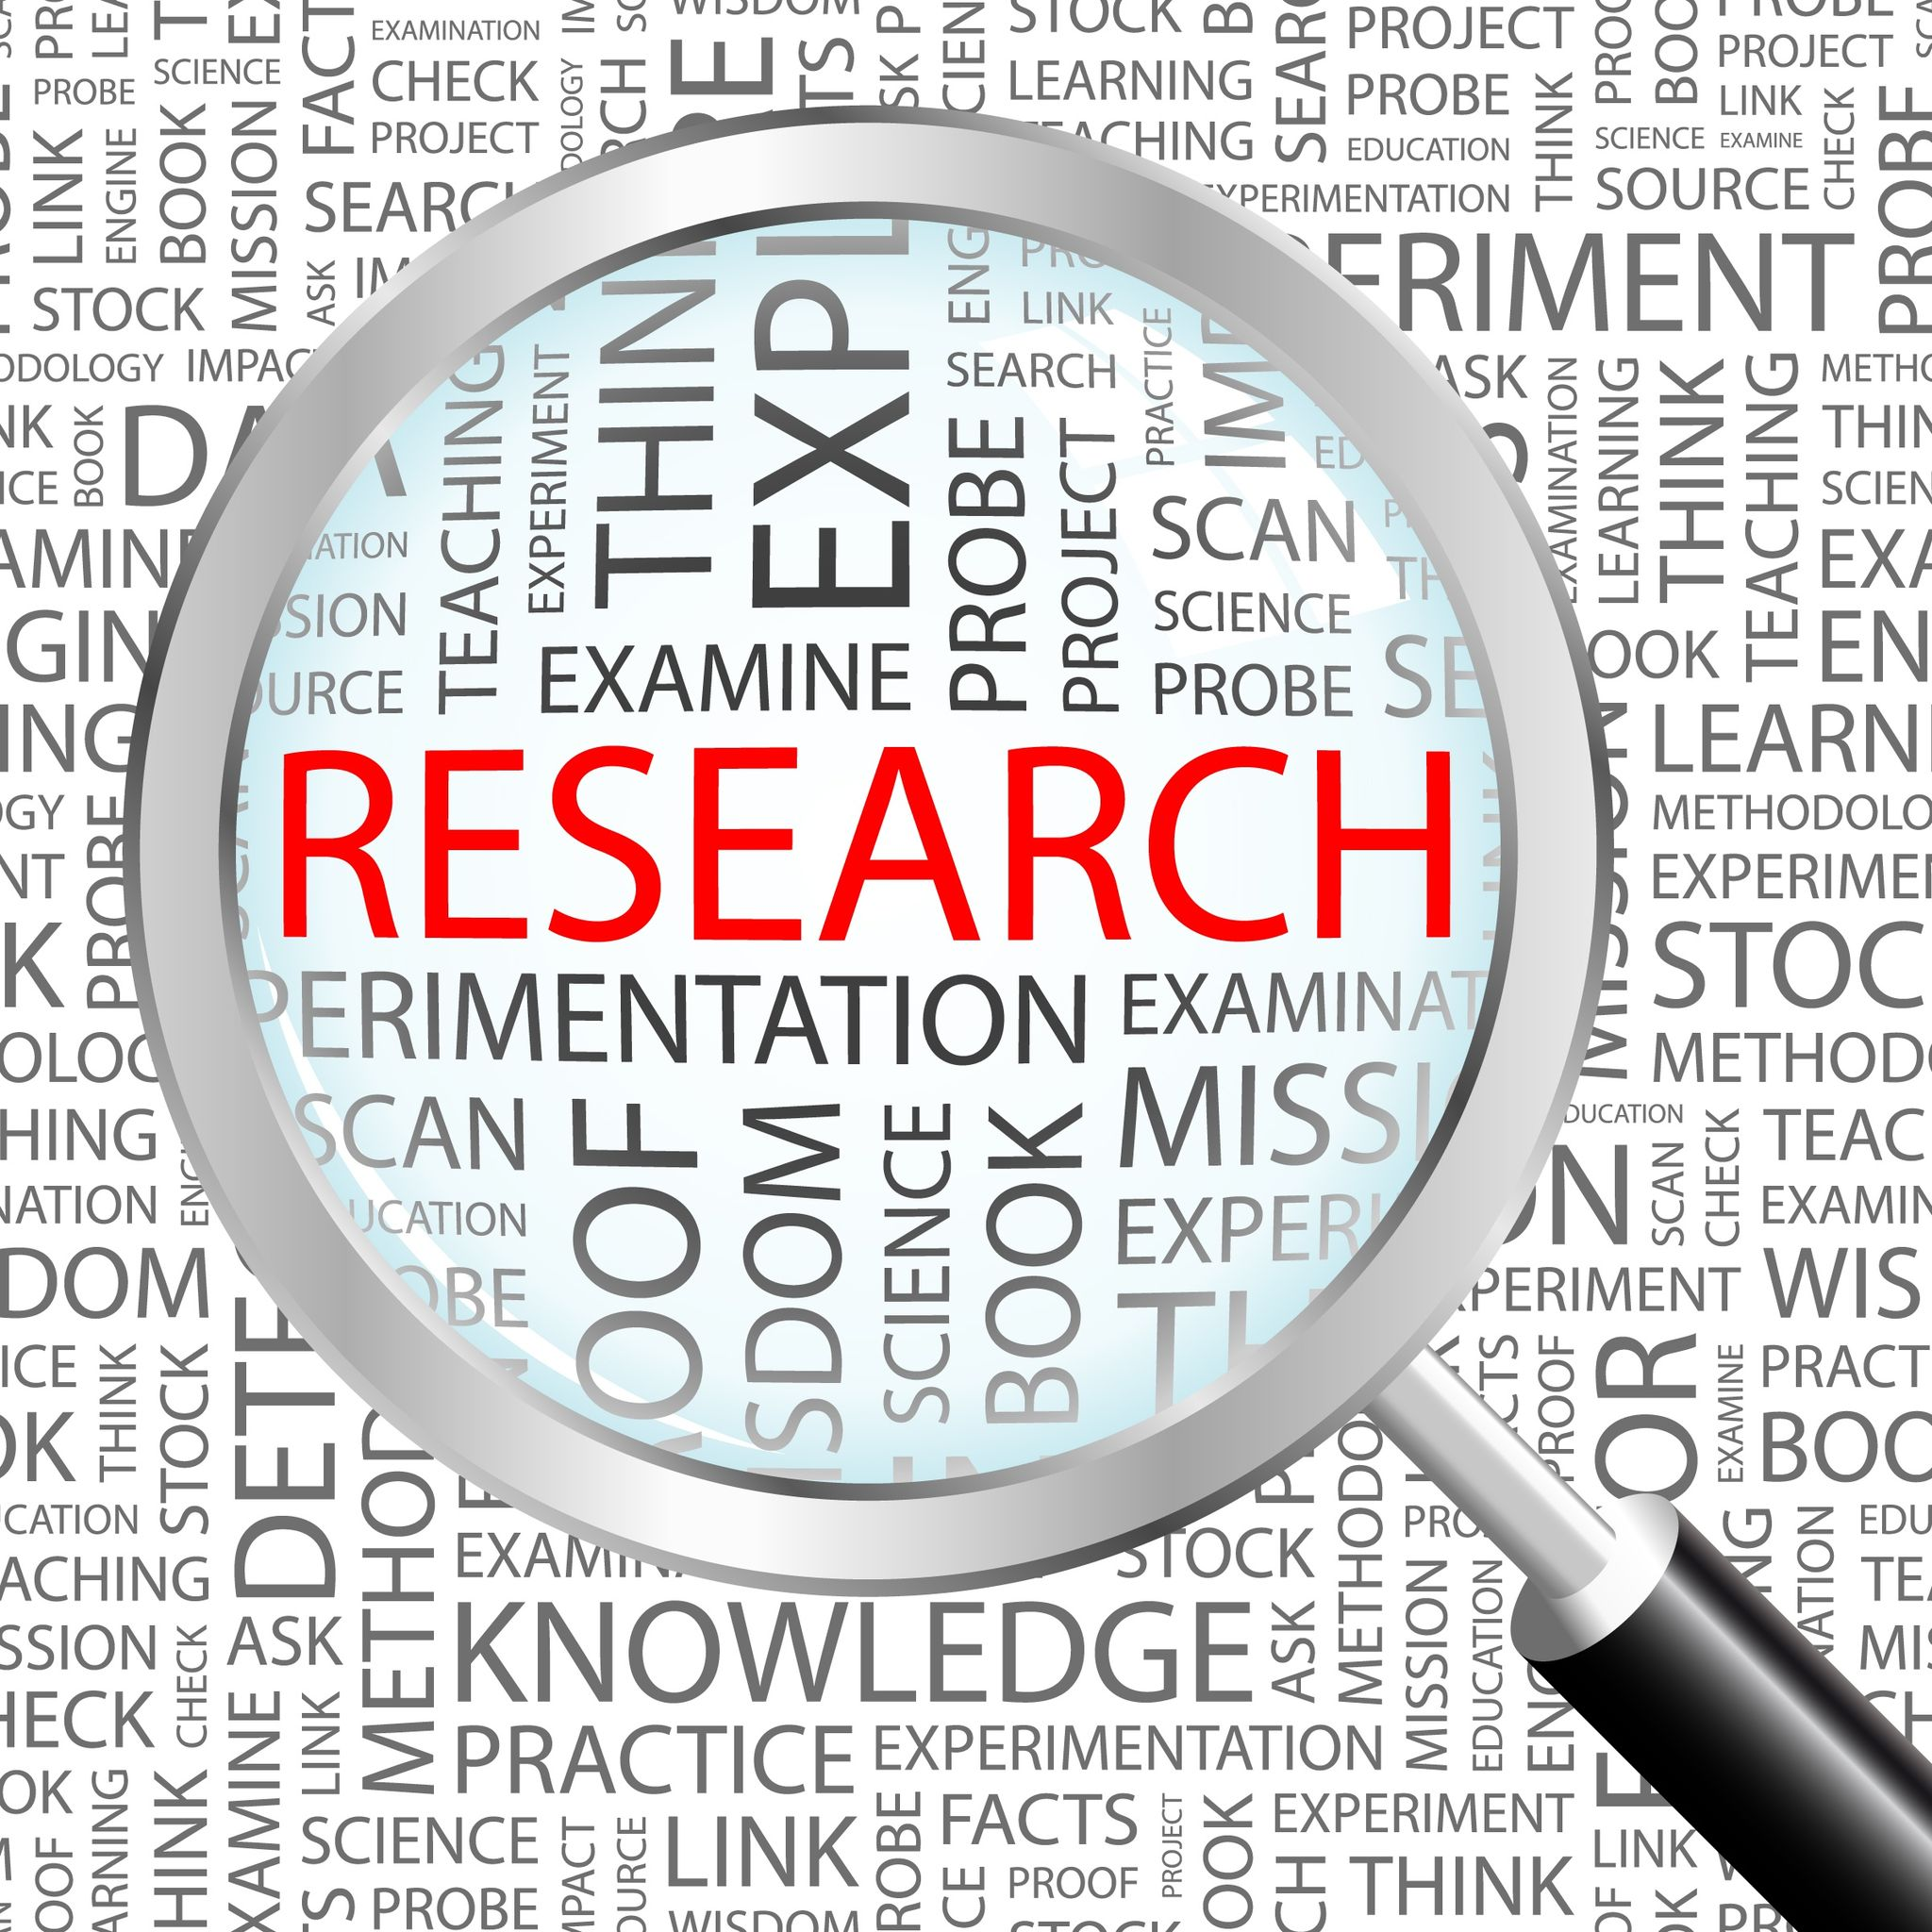 micronutrients research studies